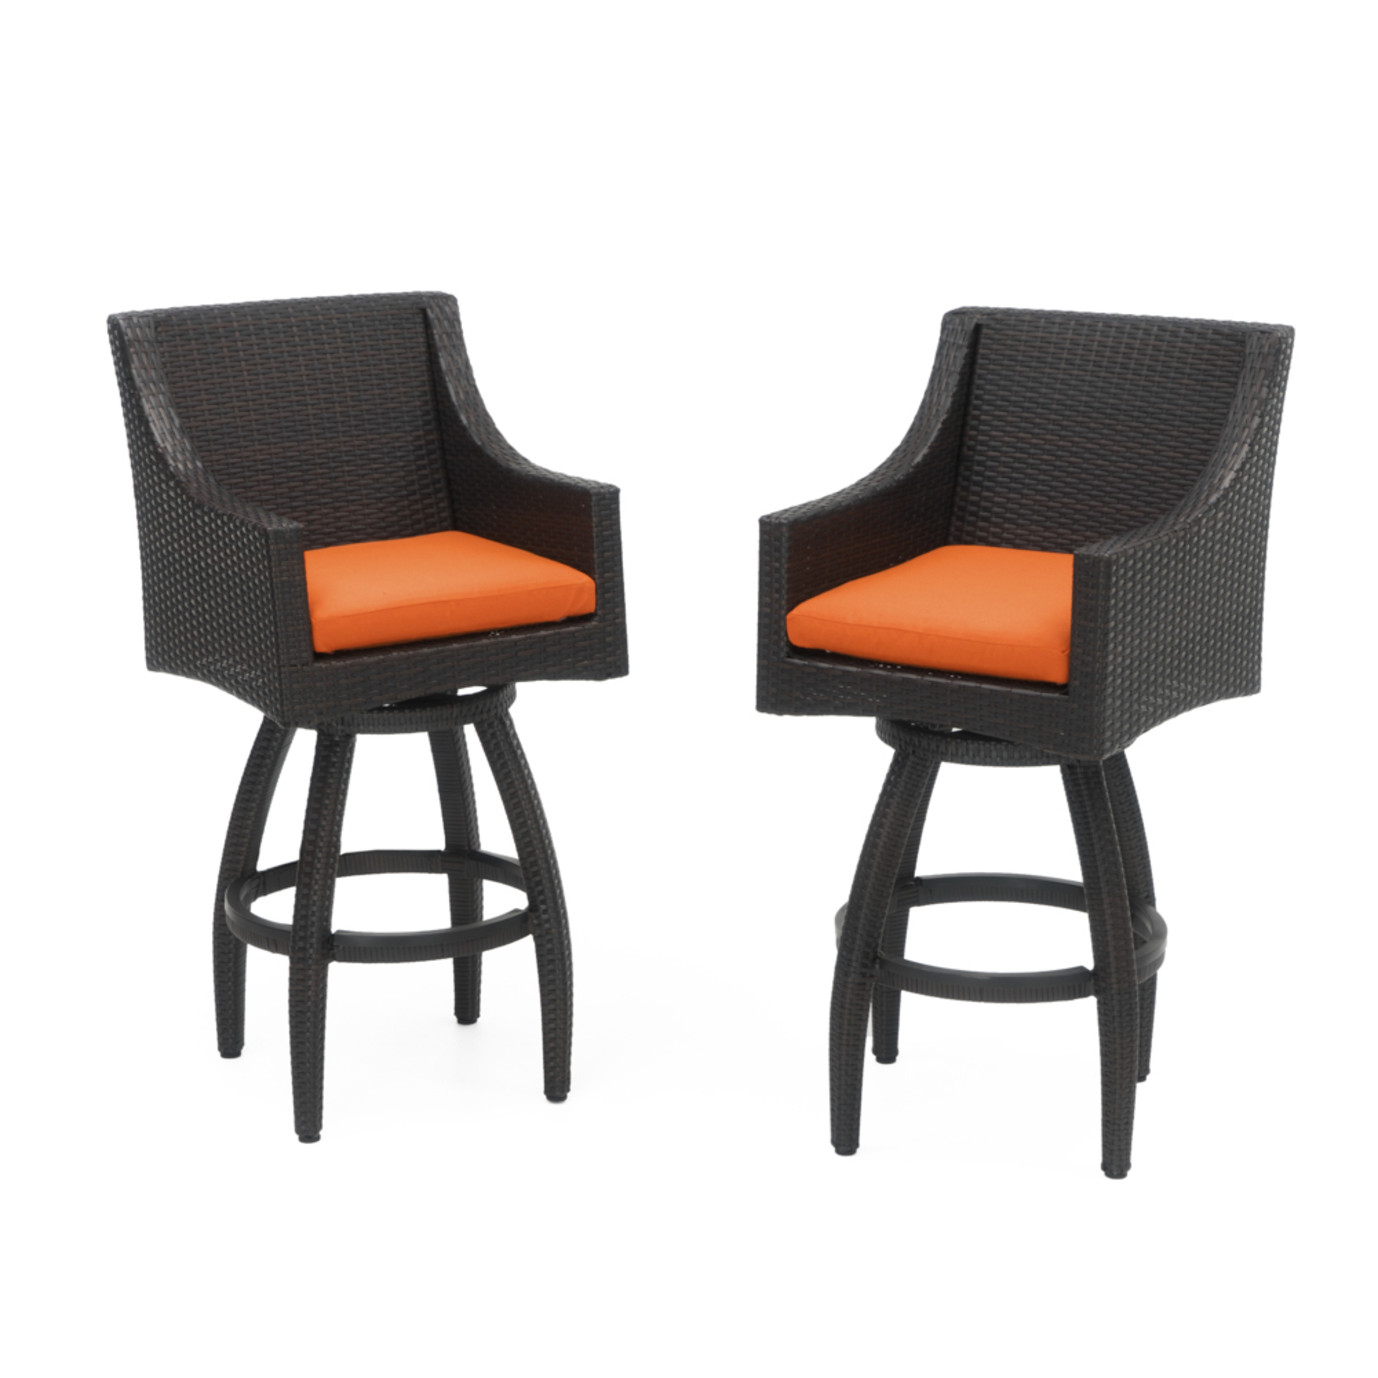 Deco™ Swivel Barstool 2pk - Tikka Orange